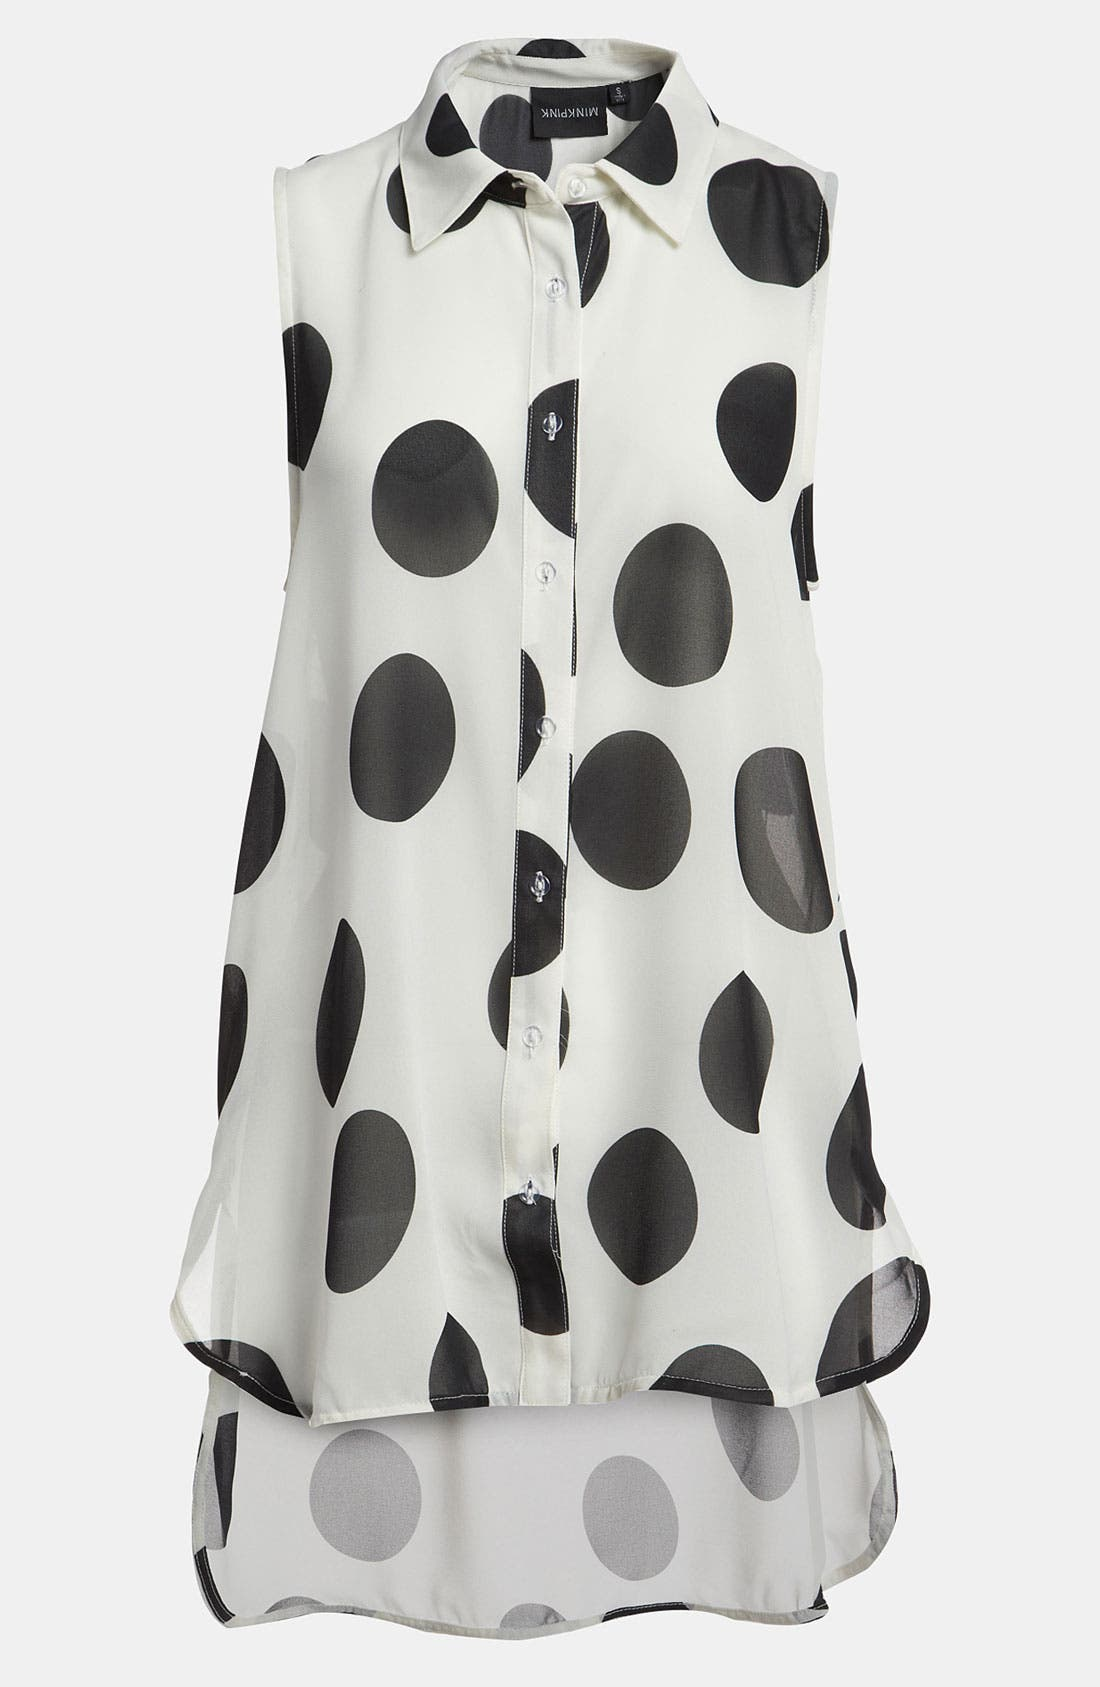 Main Image - MINKPINK 'Clowning Around' Sheer Sleeveless Shirt